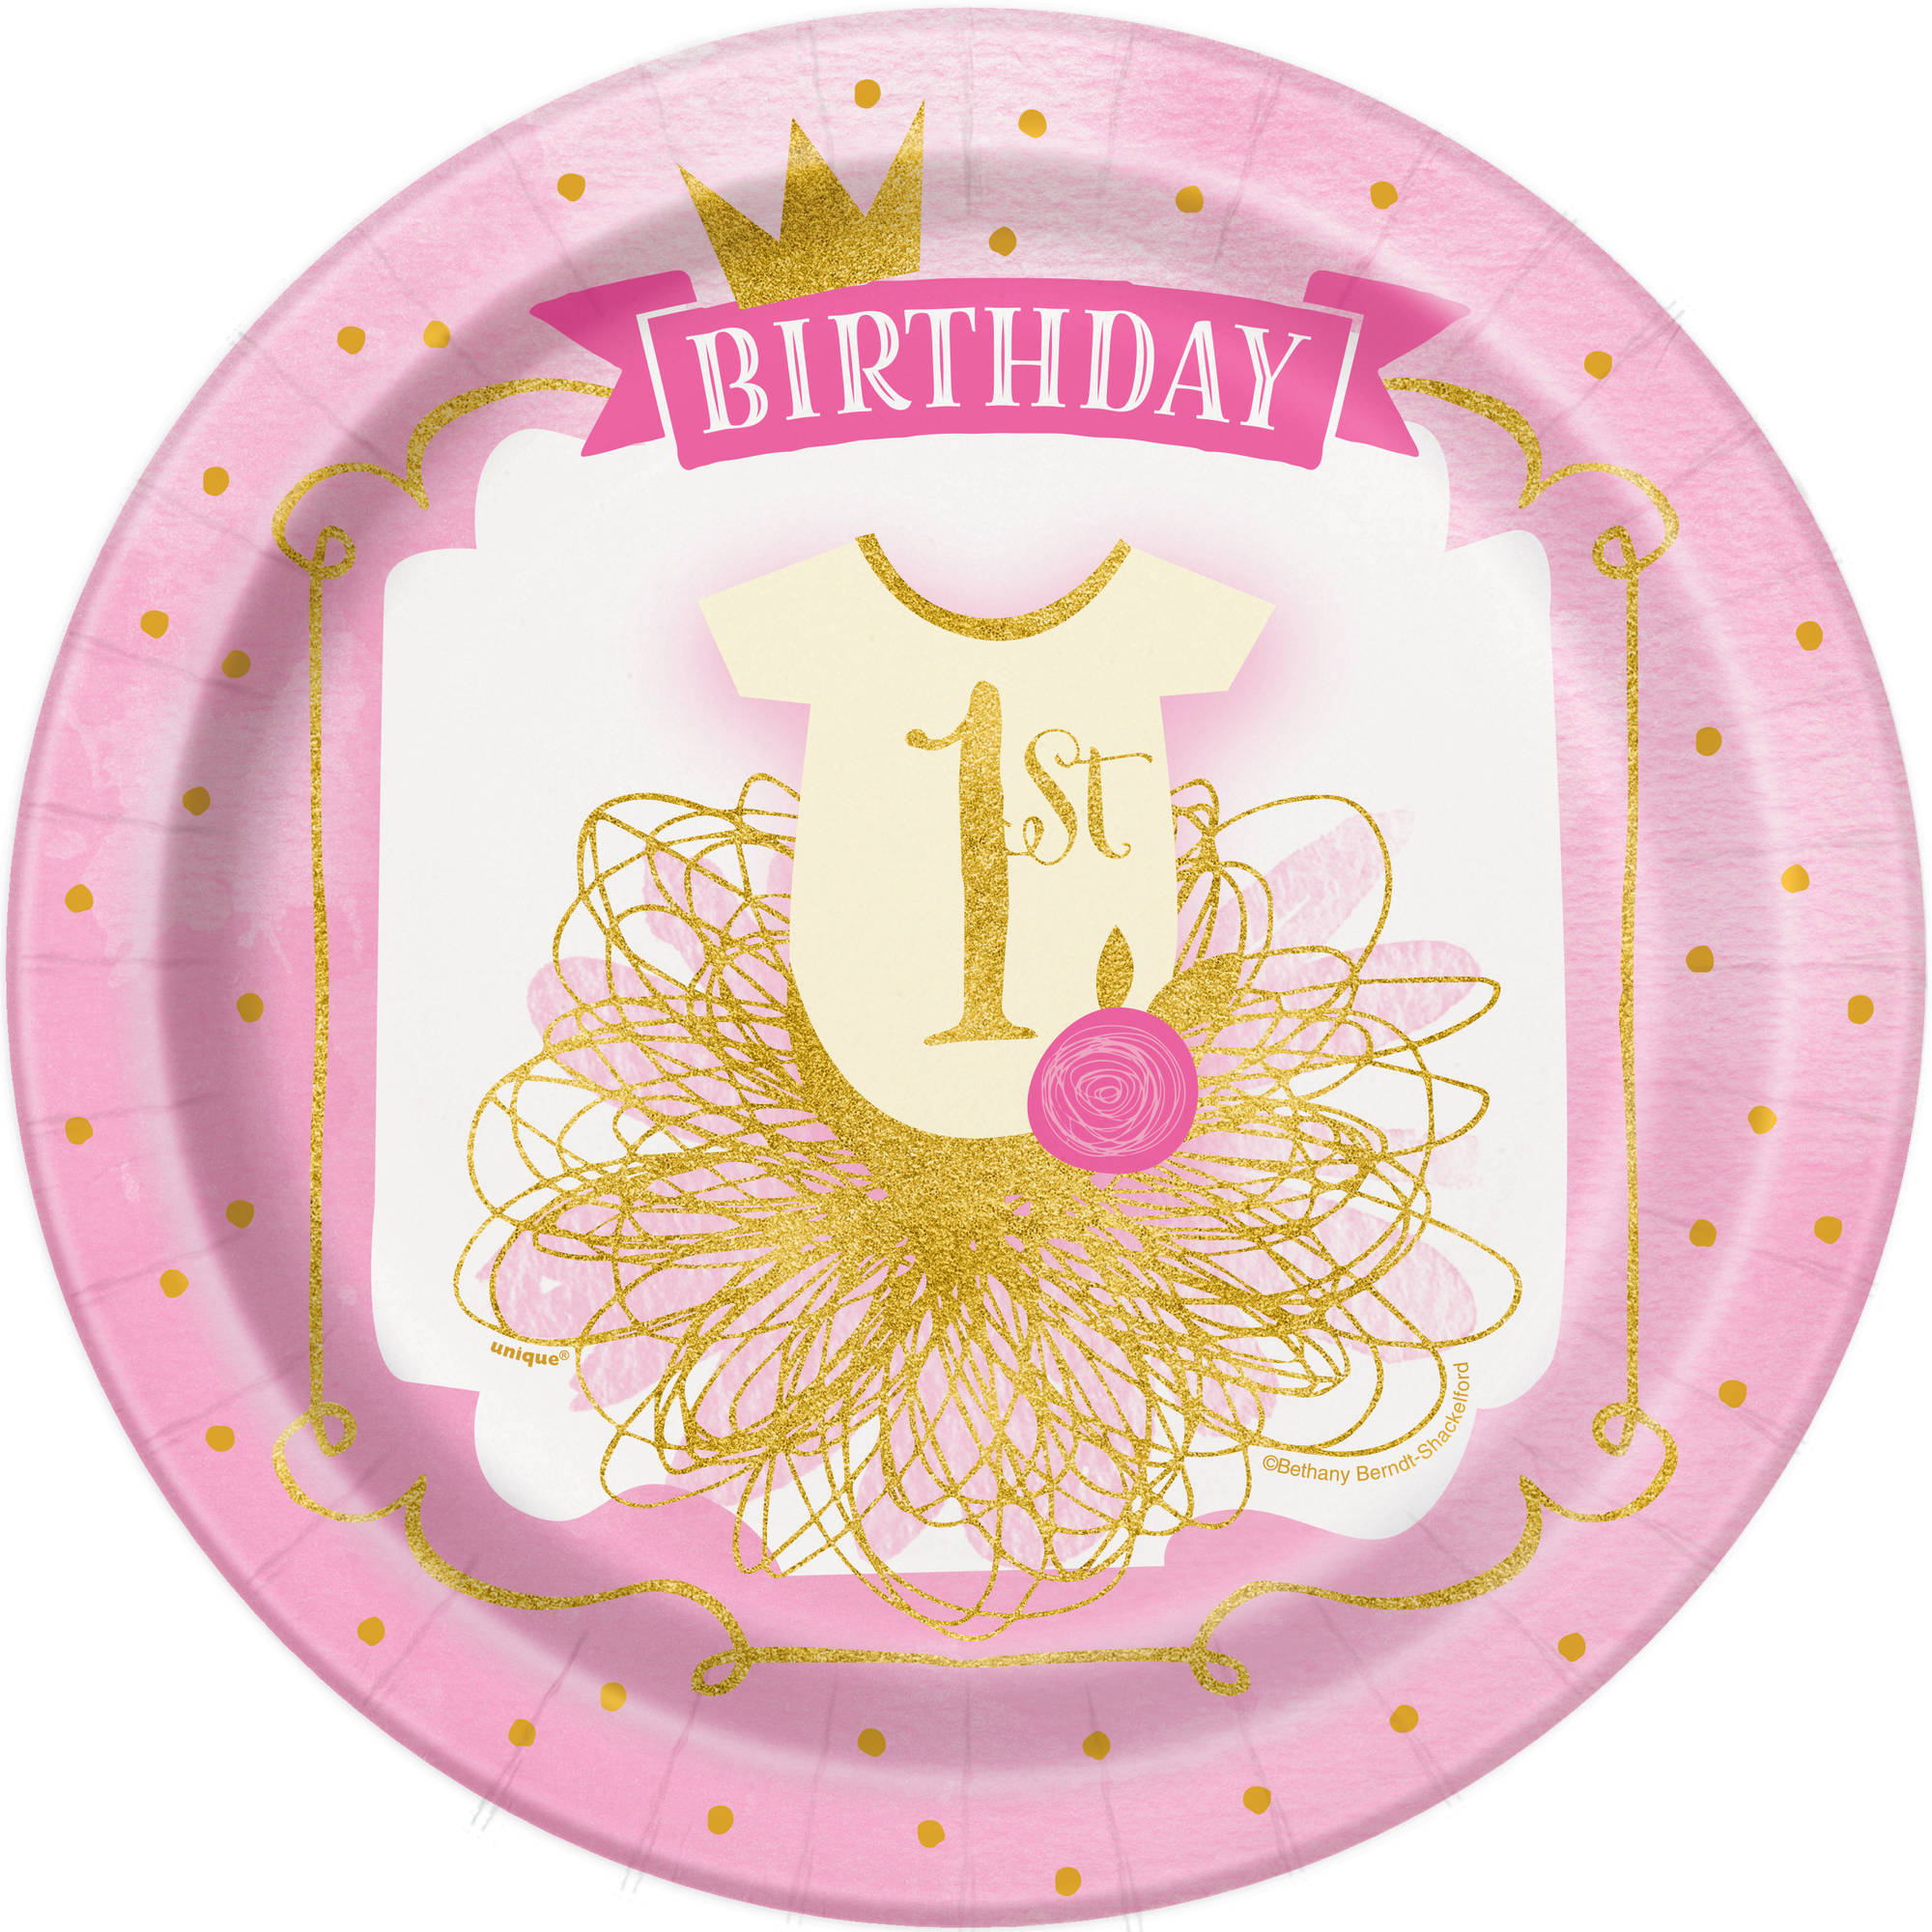 Pink & Gold First Birthday Party Supplies - Walmart.com